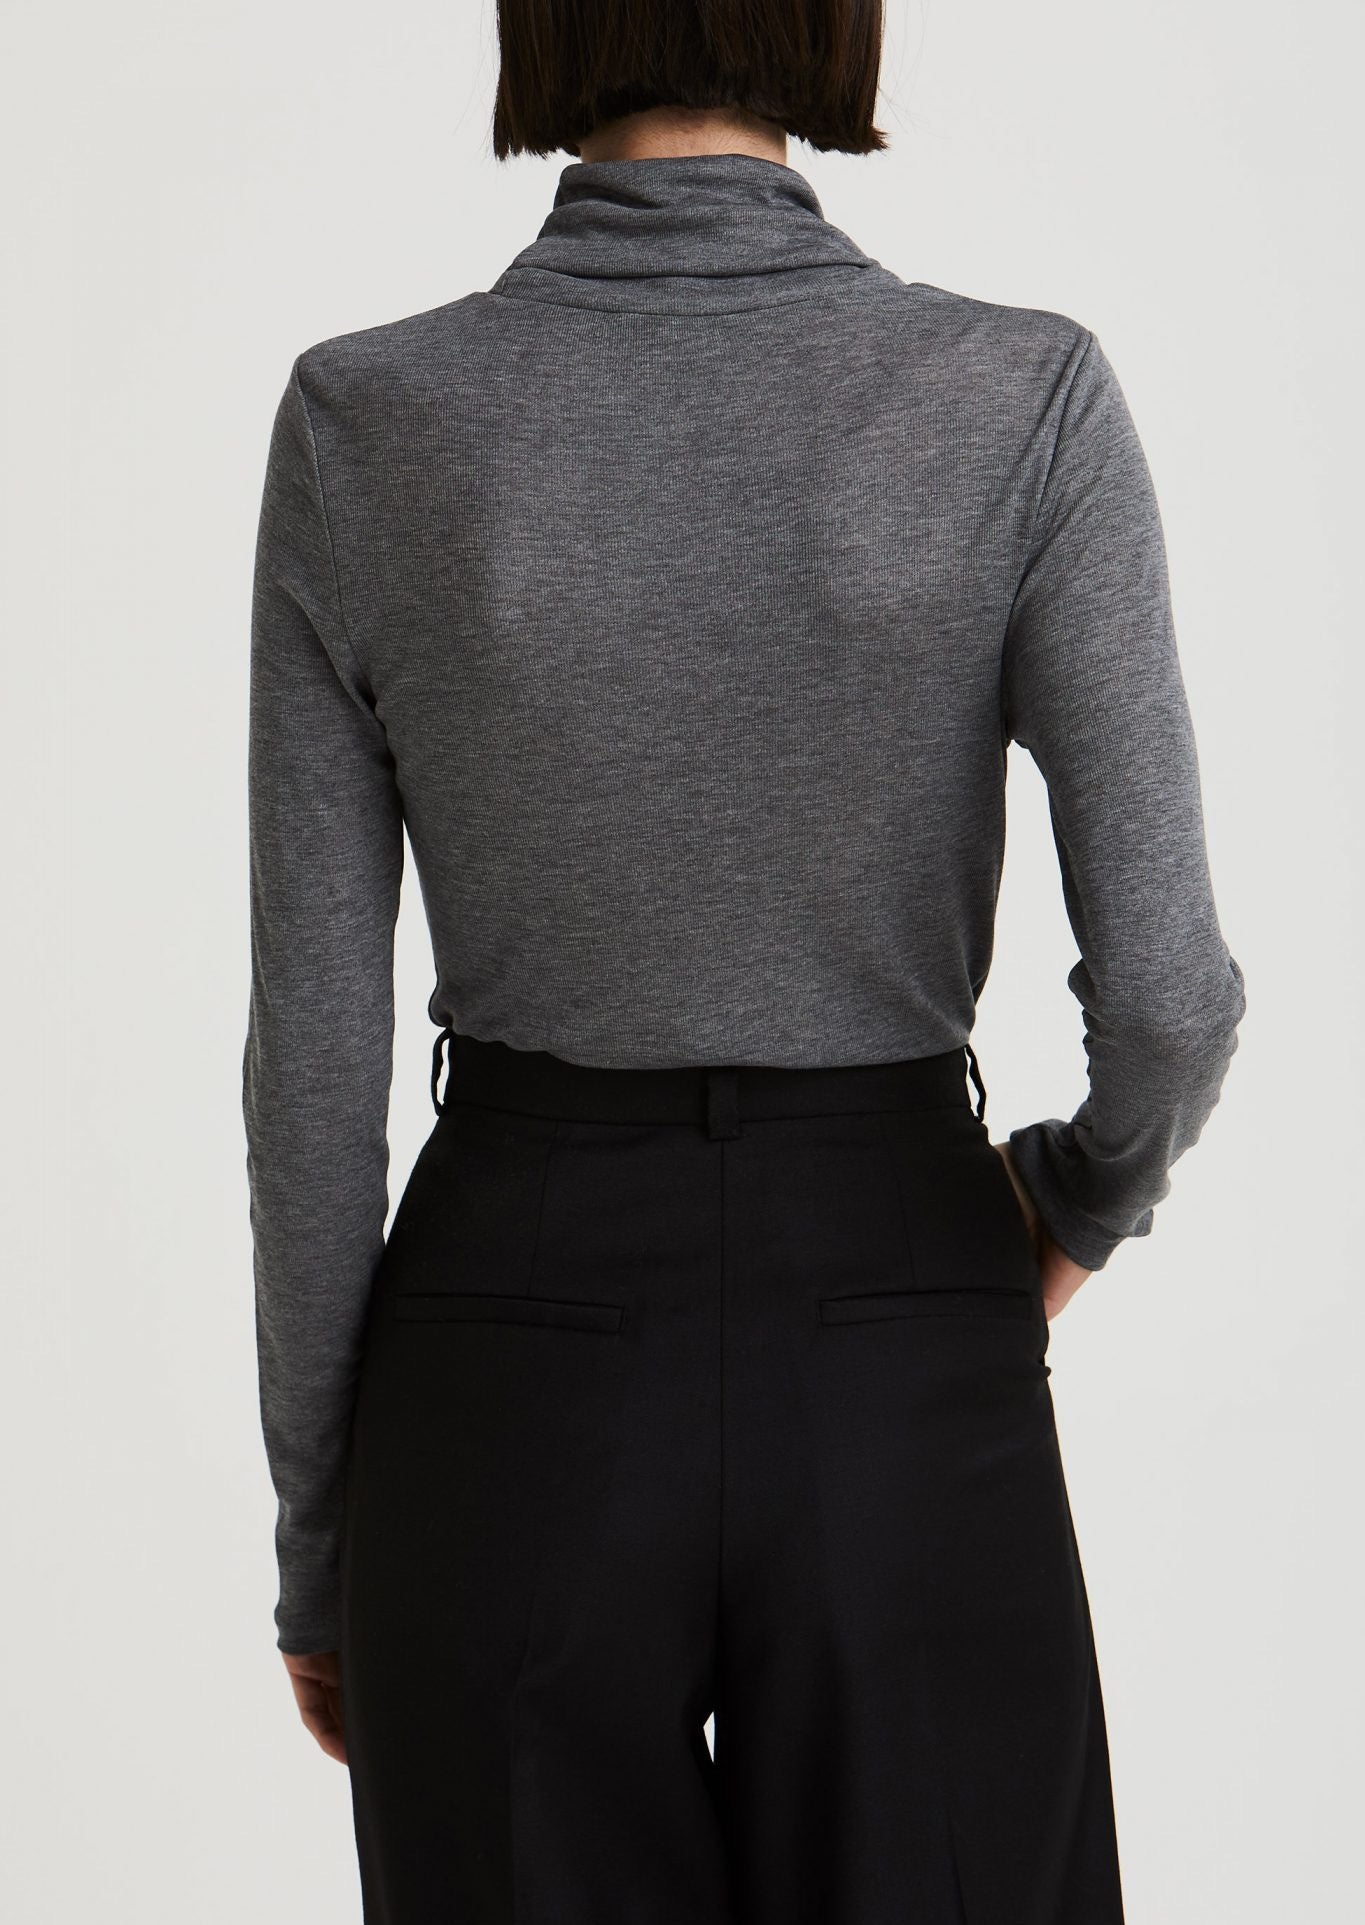 House of Dagmar -Remi Turtleneck - dark grey melange  Edit alt text